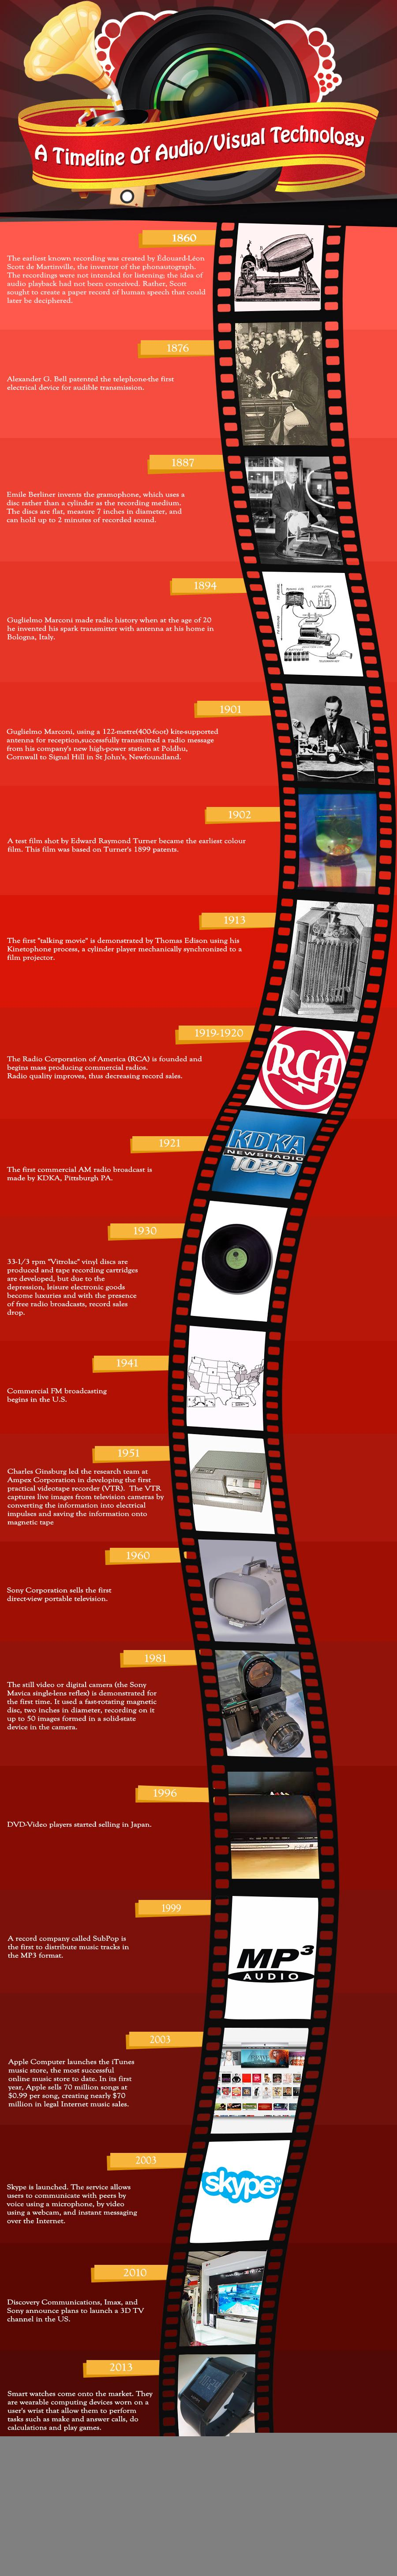 Timeline-of-audio-video-technology-infographic